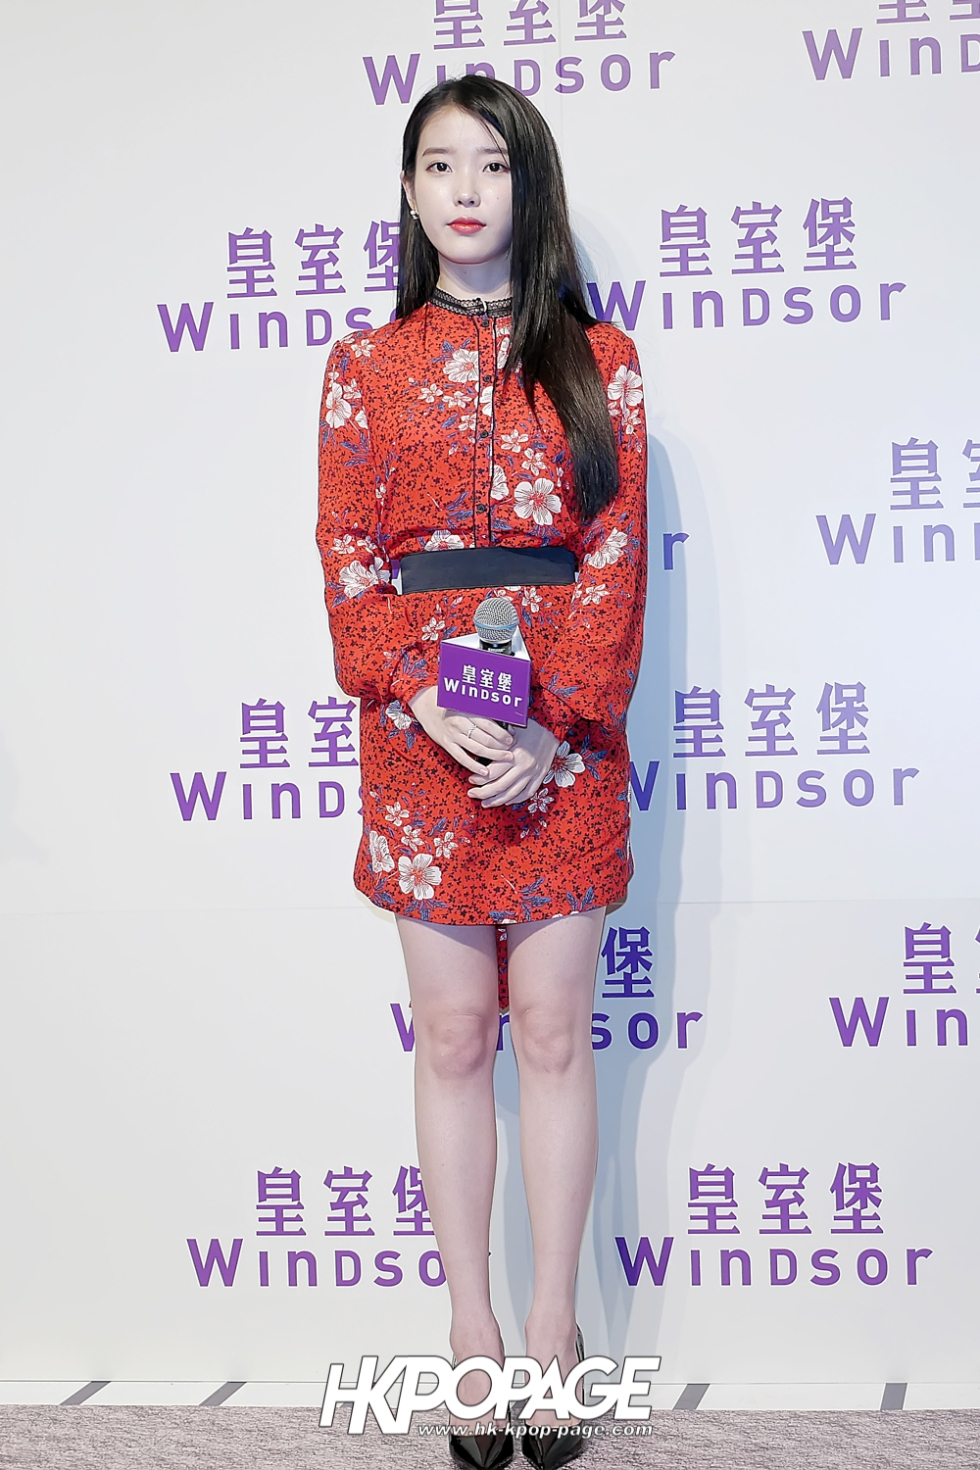 [HK.KPOP.PAGE] 181207_Windsor House x 2018 IU 10th Anniversary Tour Concert -이지금 dlwlrma- in Hong Kong Press Conference_-2